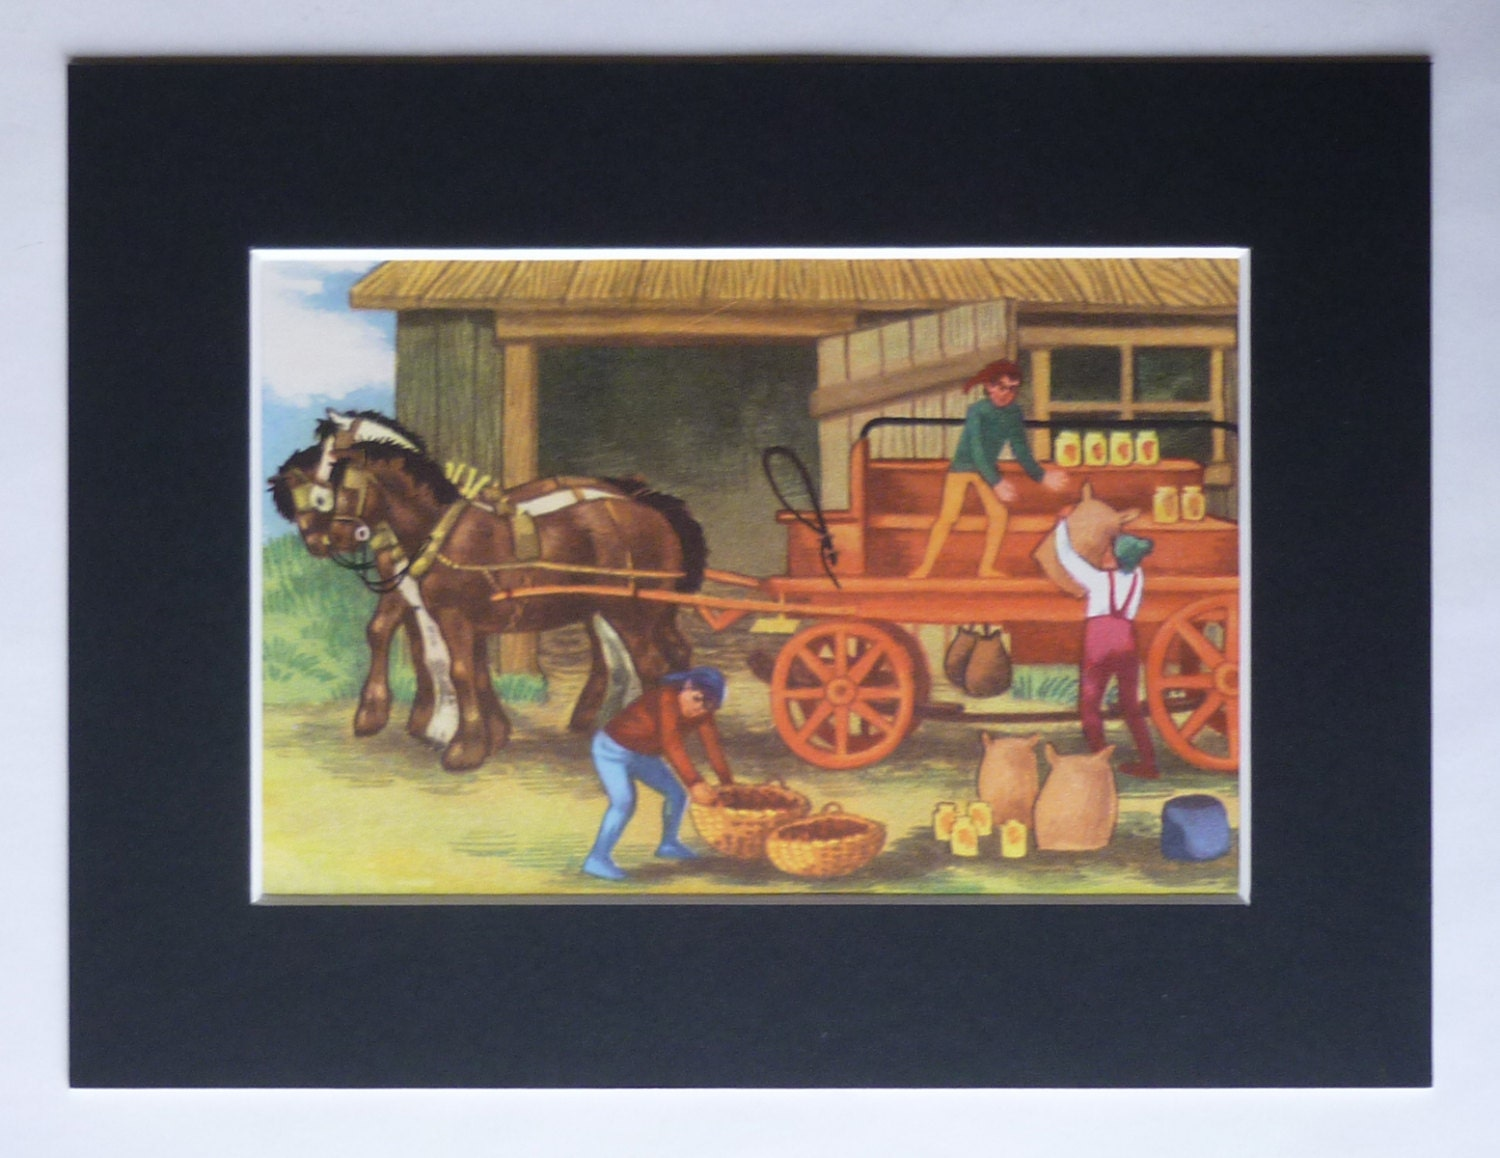 1950s Vintage Childrens Print of a Shire Horse and Cart Harvest Festival Wall Art Old Rural Equestrian Decor Available Framed Nursery Art